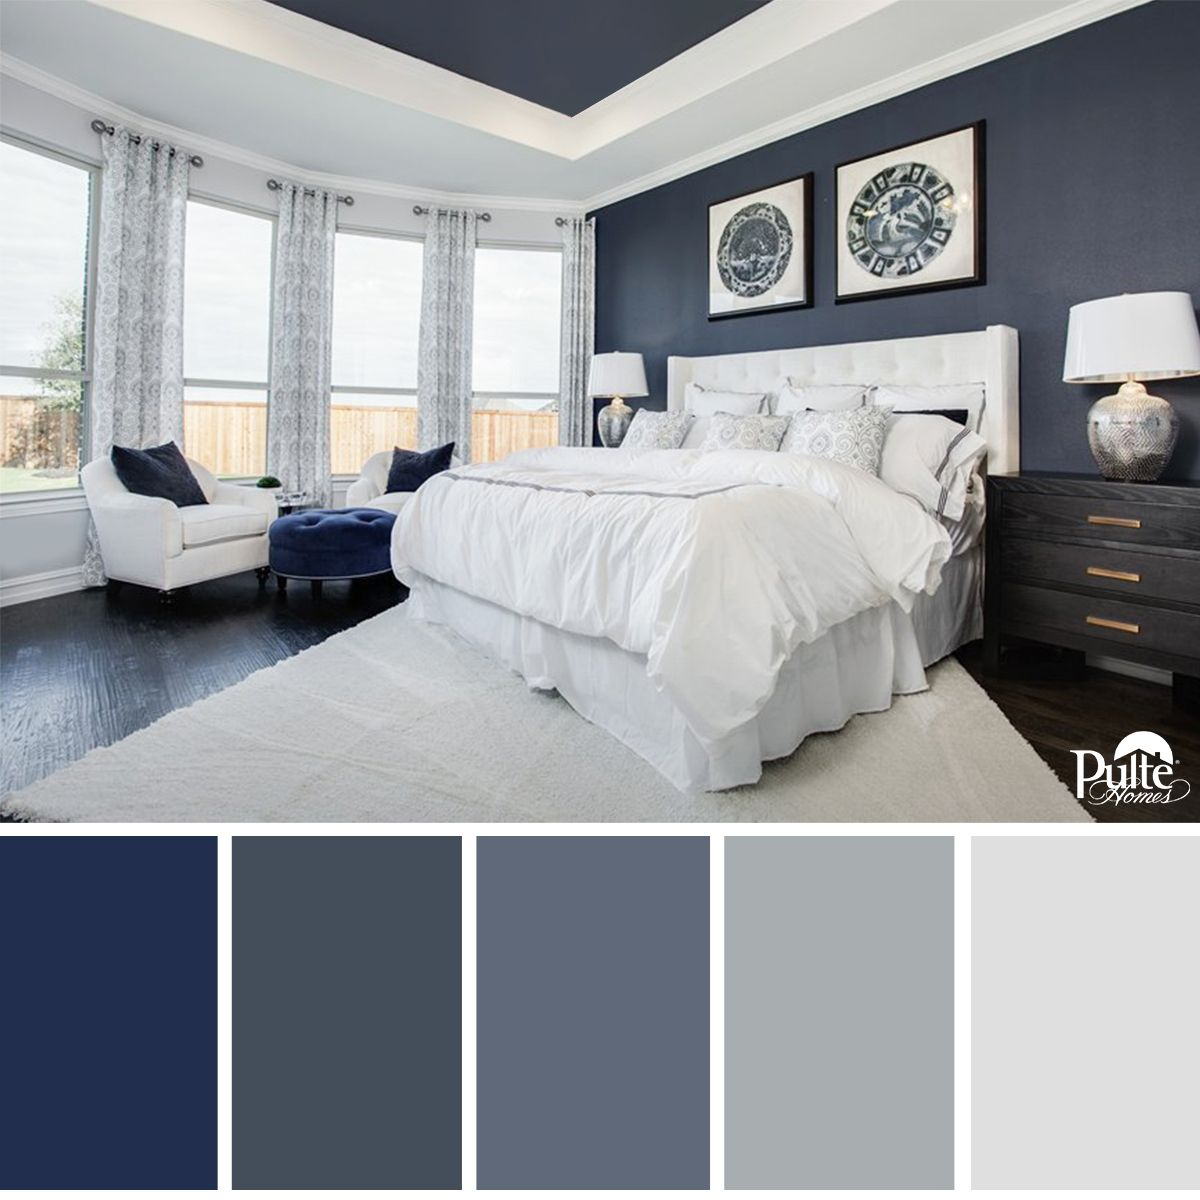 Ordinaire This Bedroom Design Has The Right Idea. The Rich Blue Color Palette And  Decor Create A Dreamy Space That Begs You To Kick Back And Relax. | Pulte  Homes